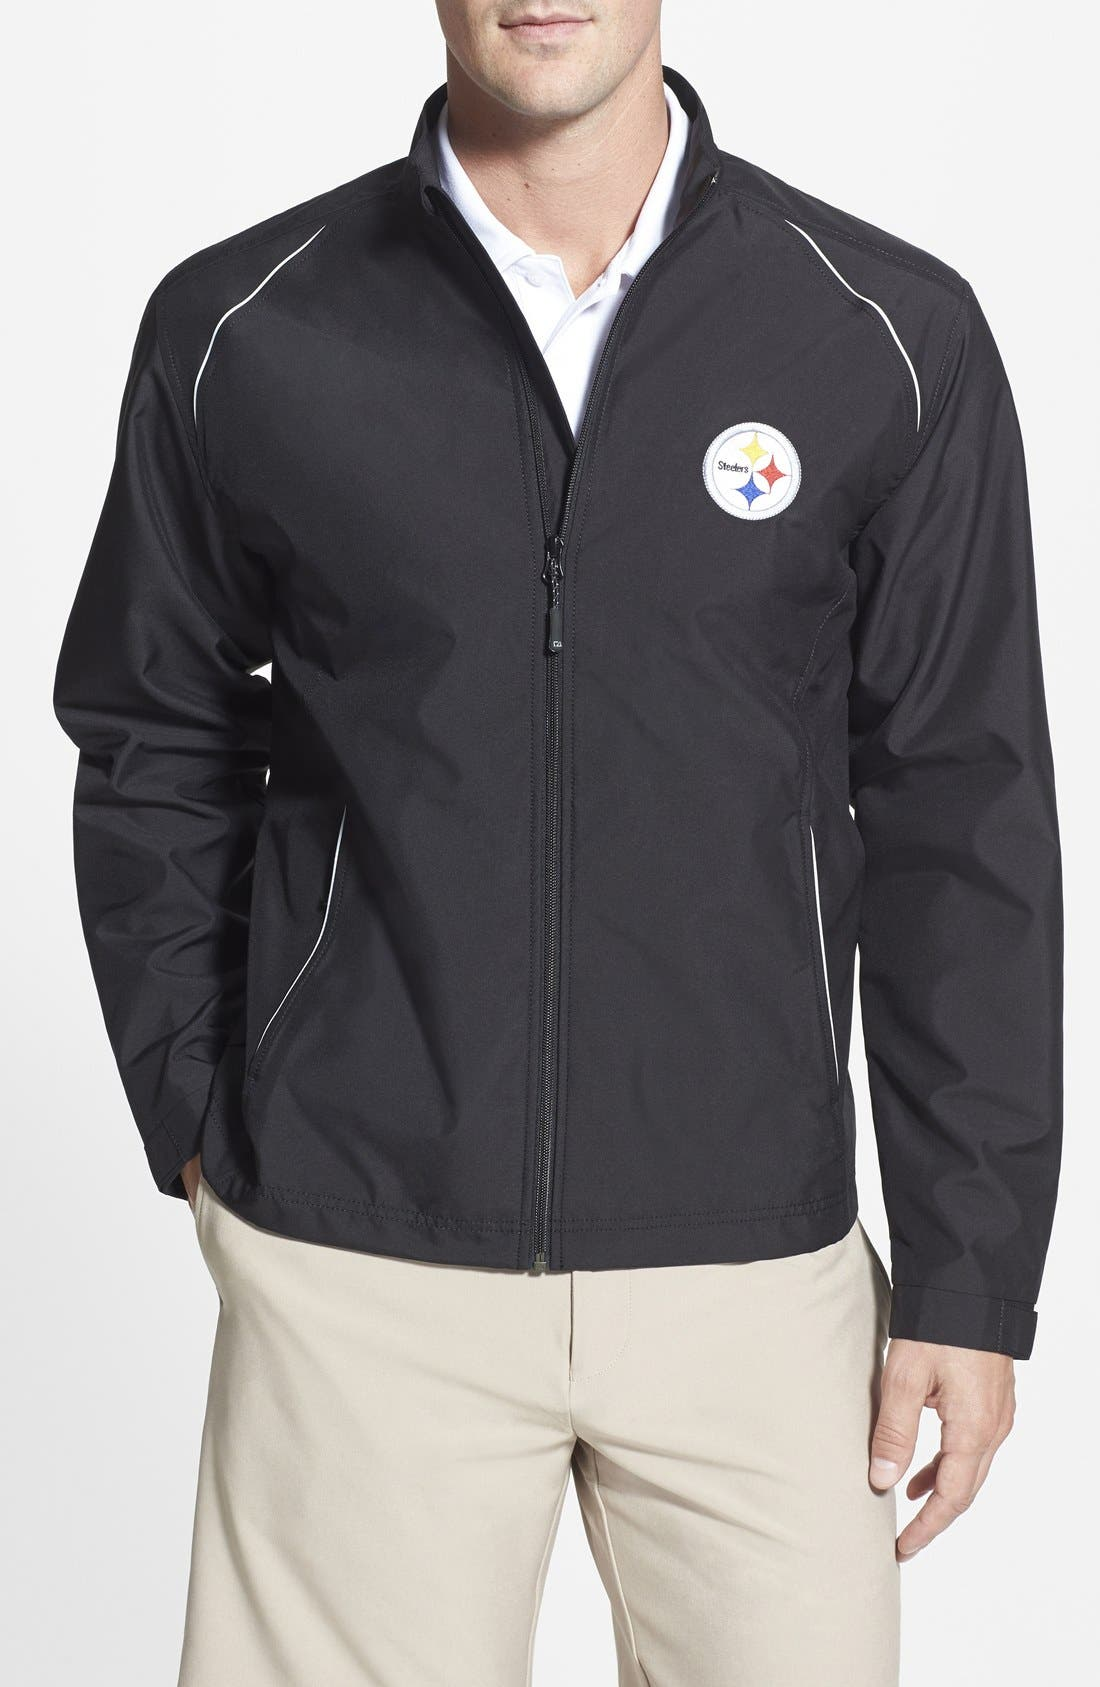 Cutter & Buck 'Pittsburgh Steelers - Beacon' WeatherTec Wind & Water Resistant Jacket (Big & Tall)